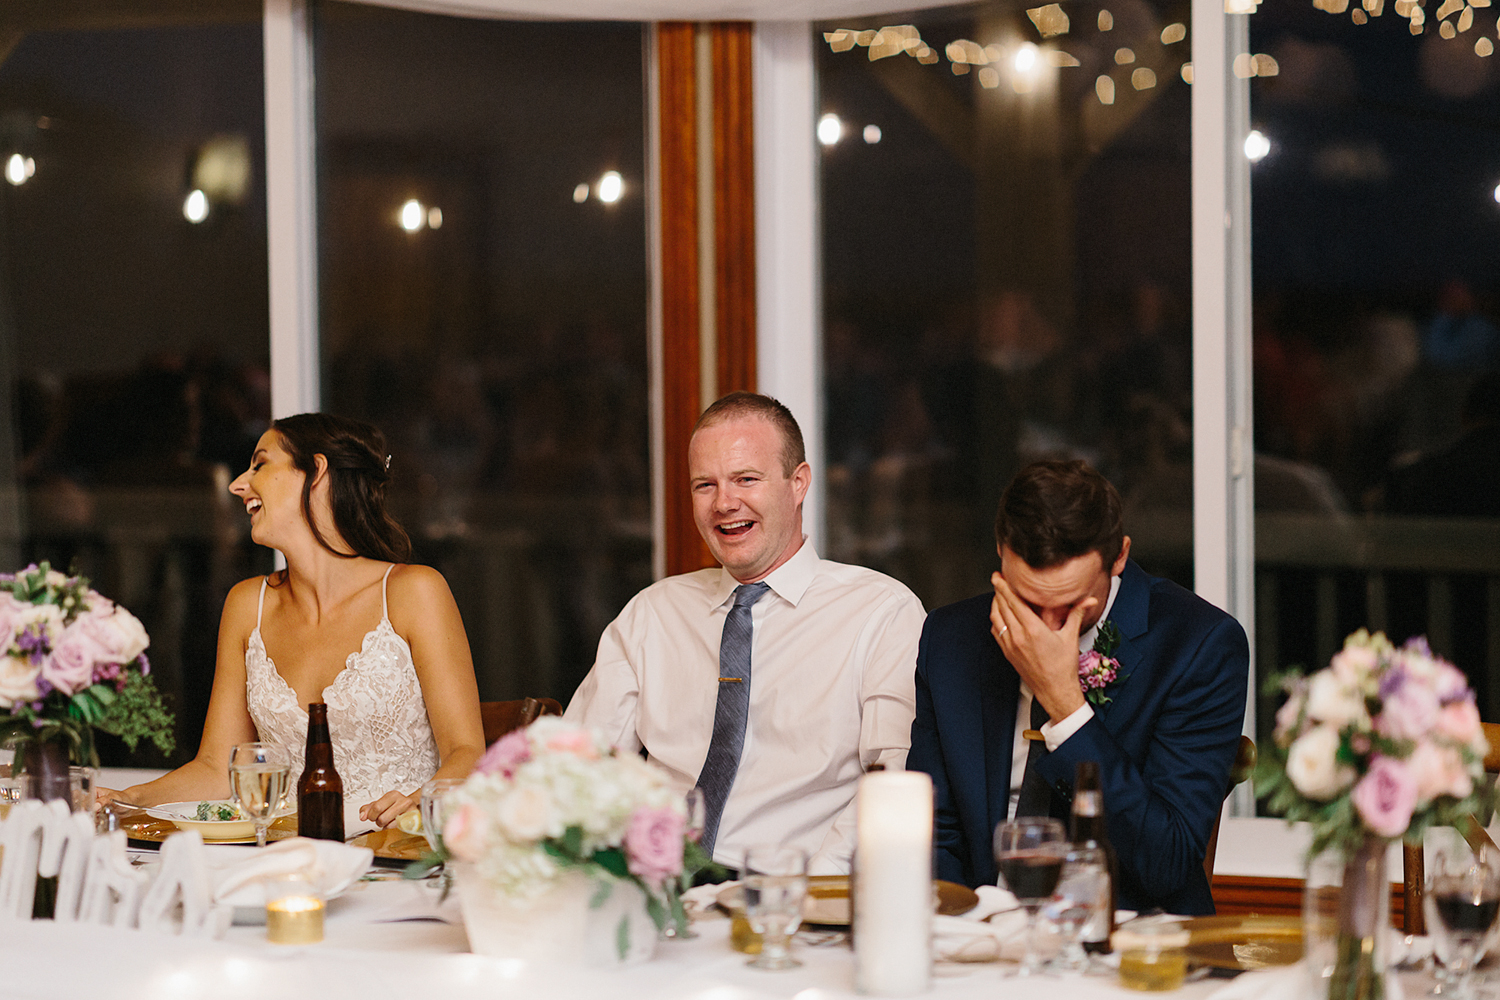 groom-and-groomsmen-laughing-at-speech-during-reception-At-Eganridge-Resort-Venue-Muskoka-Ontario-Wedding-Photography-by-Ryanne-Hollies-Photography-Toronto-Documentary-Wedding-Photographer.jpg